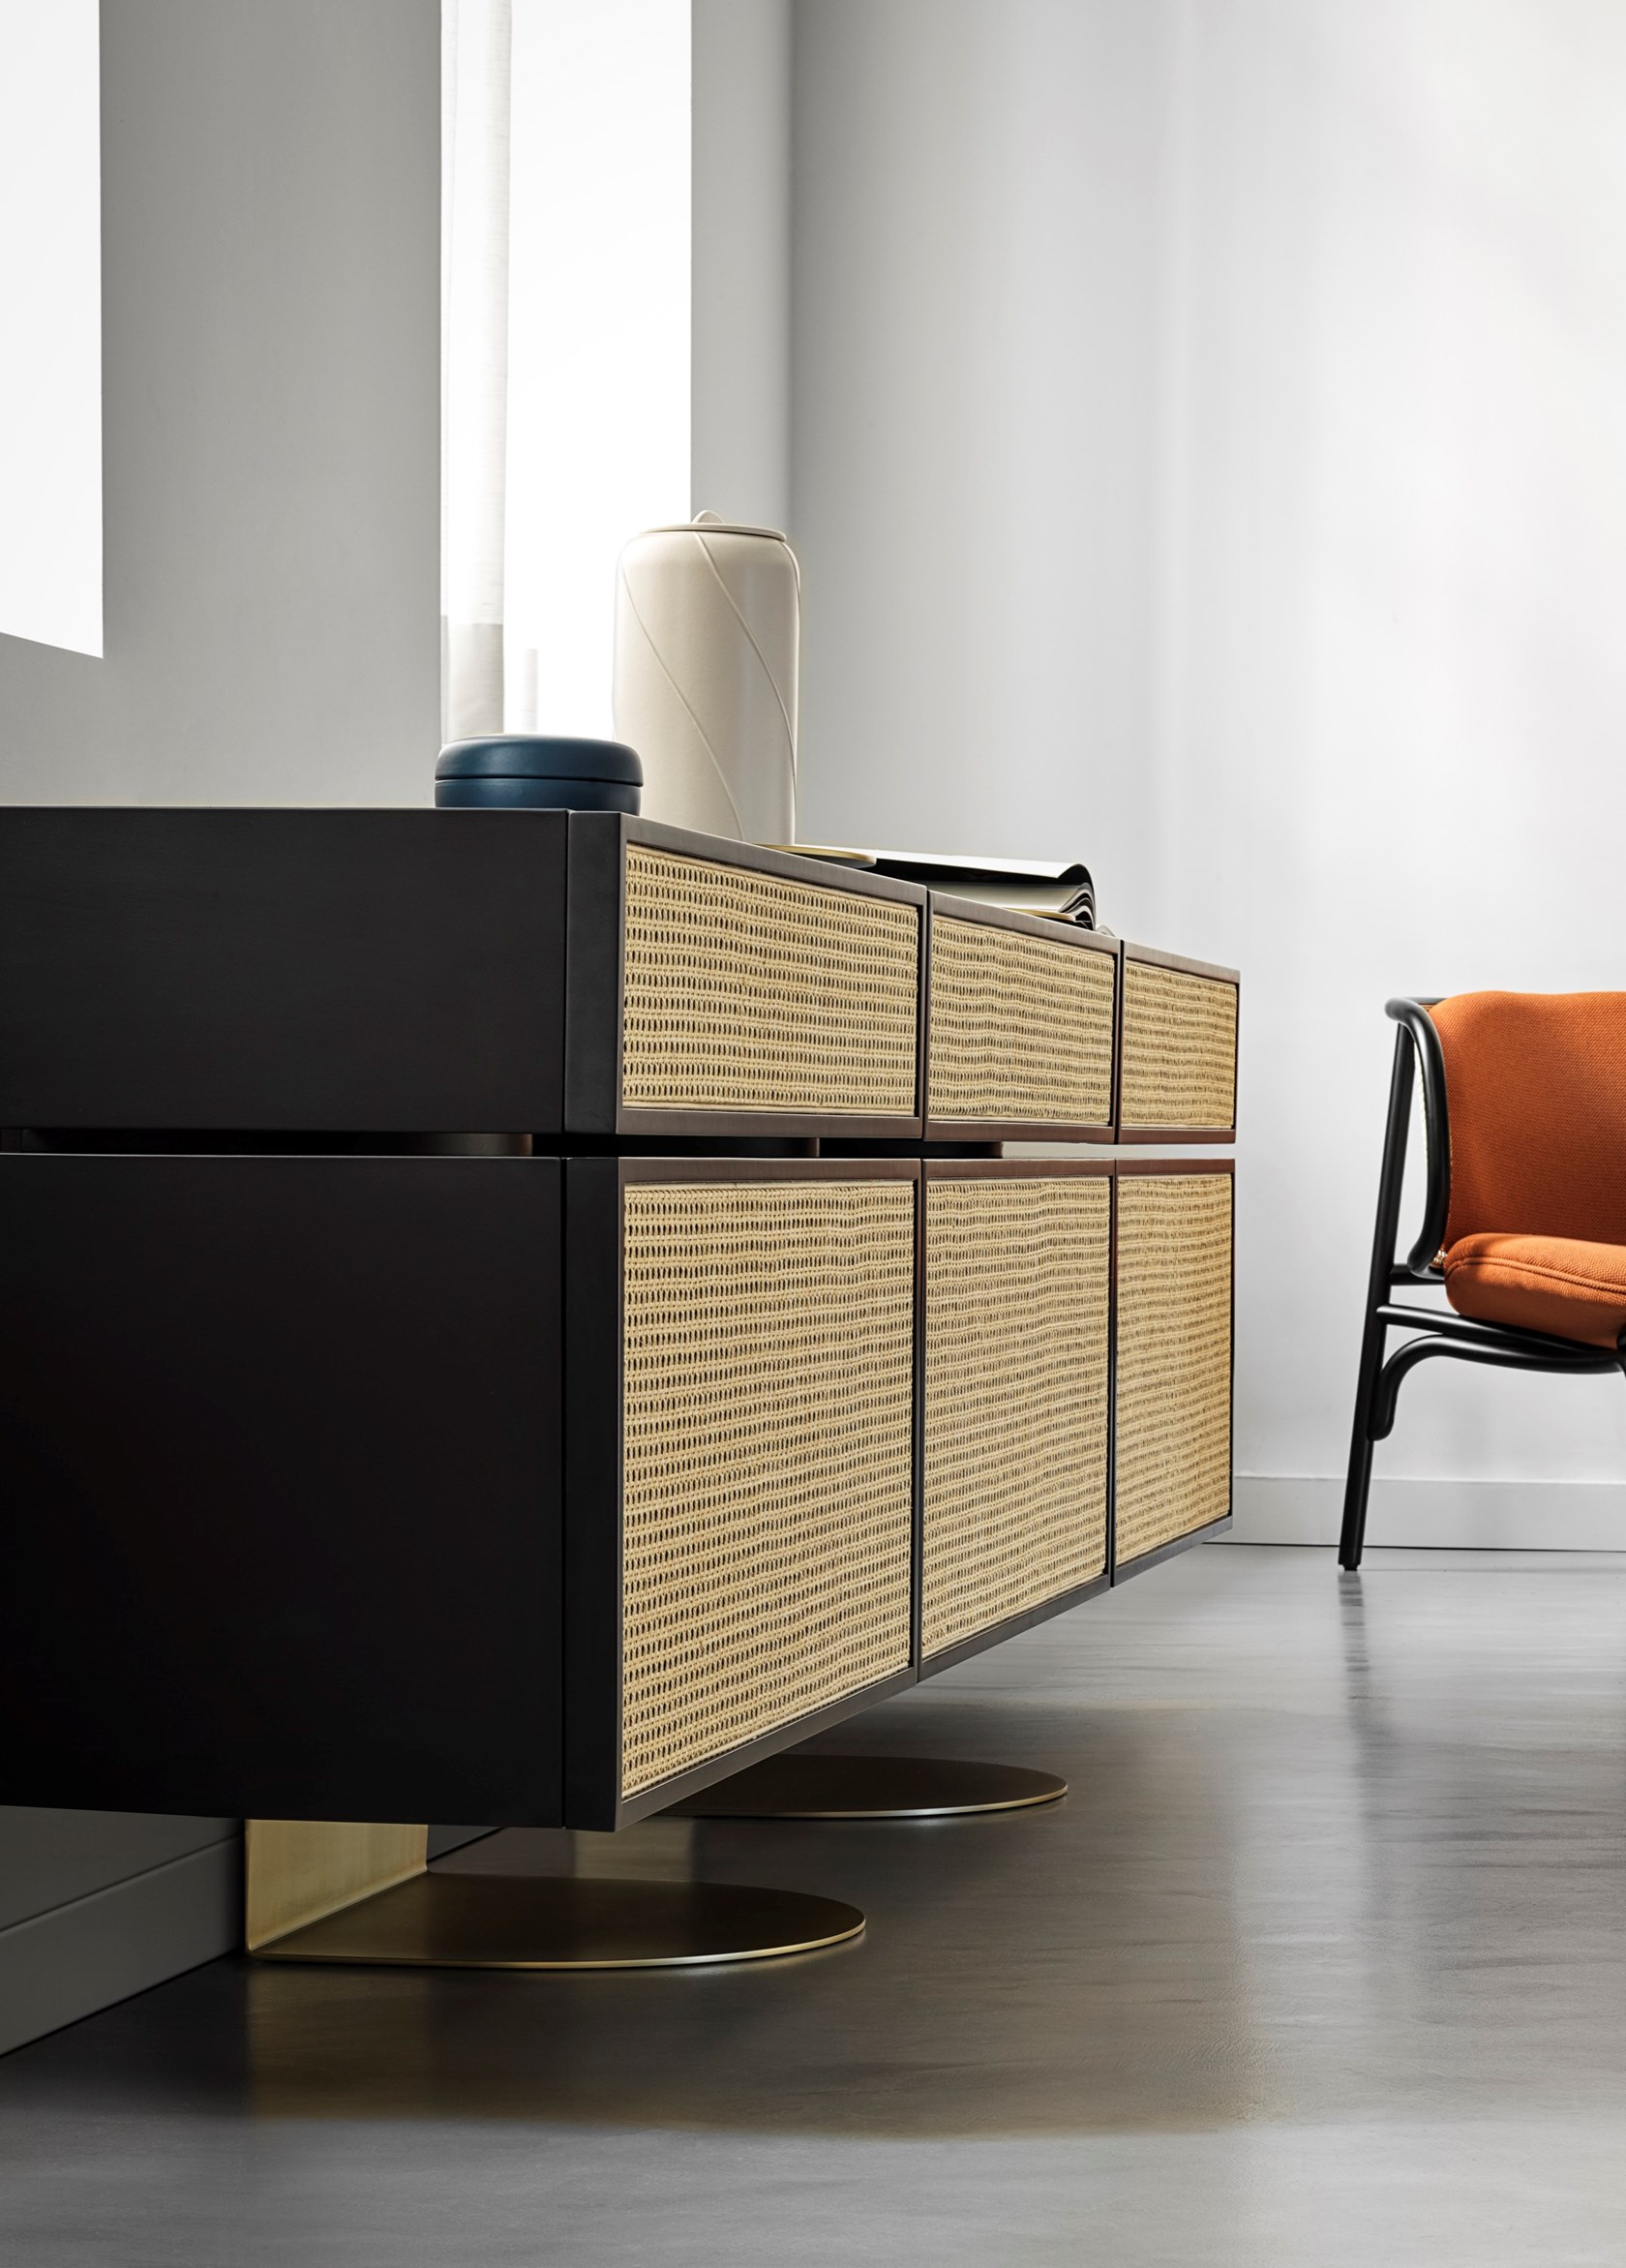 NYNY Sideboard - Distinctively asserting its modernity, Gebrüder Thonet Vienna has adopted its archetypes, bent-wood and woven cane, to design NYNY, a piece of furniture with a strong emotional dimension capable of imposing itself in space as the absolute protagonist of the scene. With its versatile personality, this multifaceted design by storagemilano expresses an interdependence of design, architecture and art that draws inspiration from both the typical post-modernist styles and the graphic playfulness of the 1980s while creating an irregular development of perspective accentuated by the intense colour scheme. The reference to architecture is also reflected in the name NYNY as New York, New York. The play of volumes of NYNY is, in fact, a tribute to the New Museum of Contemporary Art in Nolita, whose building expresses the archetypal forms of the Babylonian ziggurat. With a totemic spirit, NYNY is defined in the asymmetrical superimposition of geometric volumes suspended with the support of the wall-mounted metal structure. Each volume corresponds to a specific function: below, two drawers, one high and one low; above, two compartments with doors. The lower one can also be used as a desk. NYNY is a family of storage units, all characterised by the strength of the creative language typical of storagemilano, a balanced encounter between creativity as a designer, and the design language of architects. | Matter of Stuff